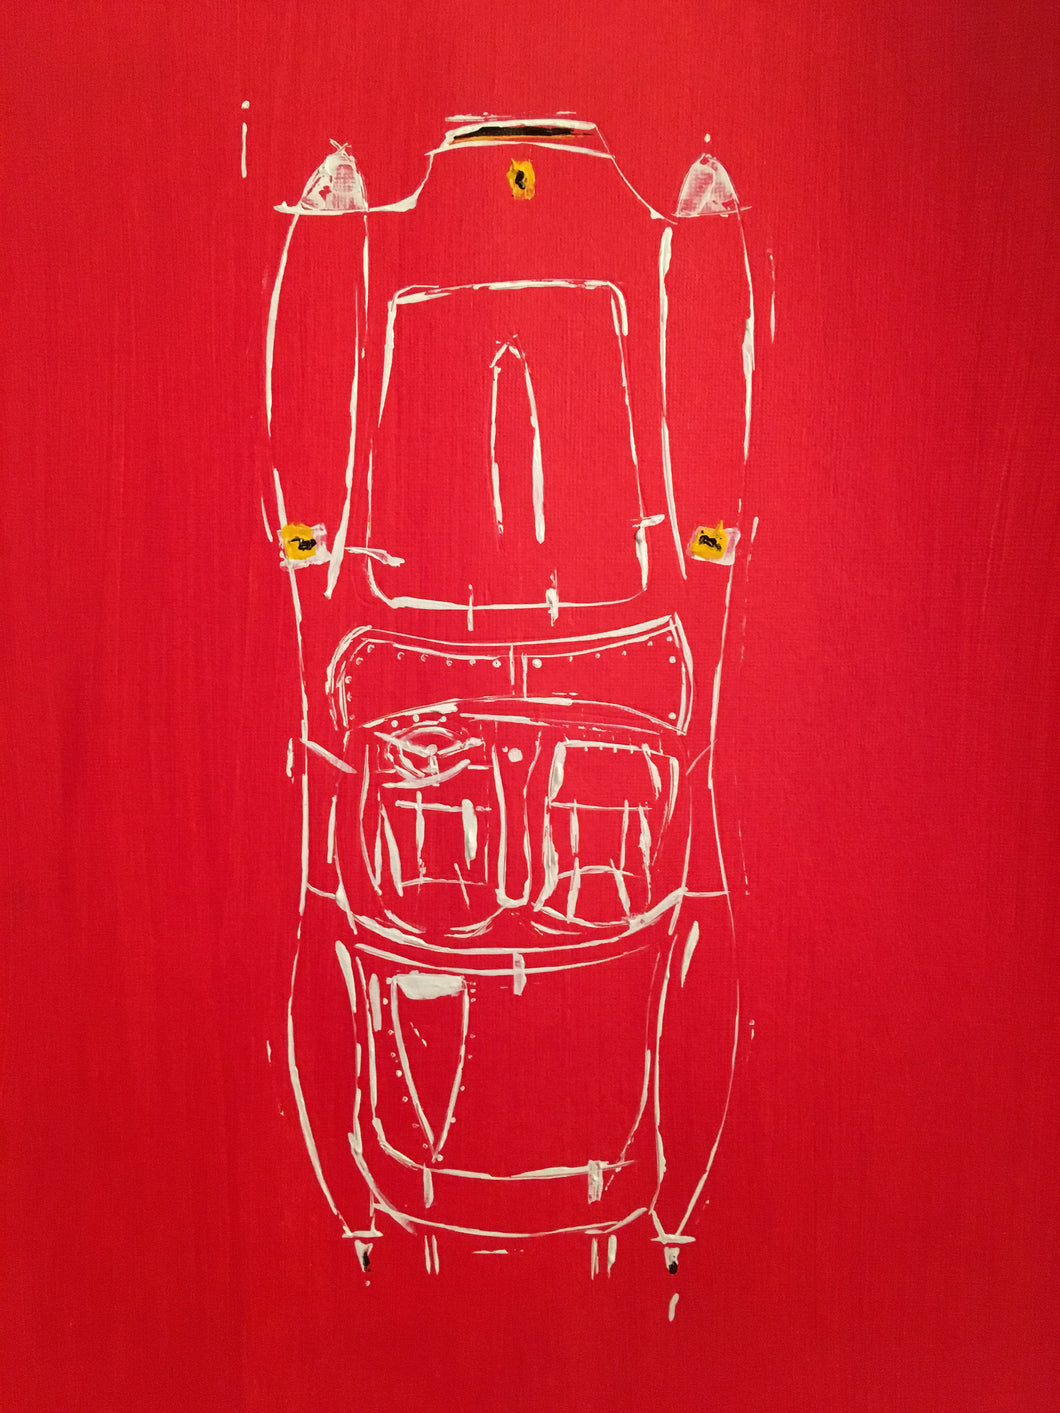 FERRARI 250 1957 TESTAROSSA ARTIST JAMES SOTER TOP VIEW